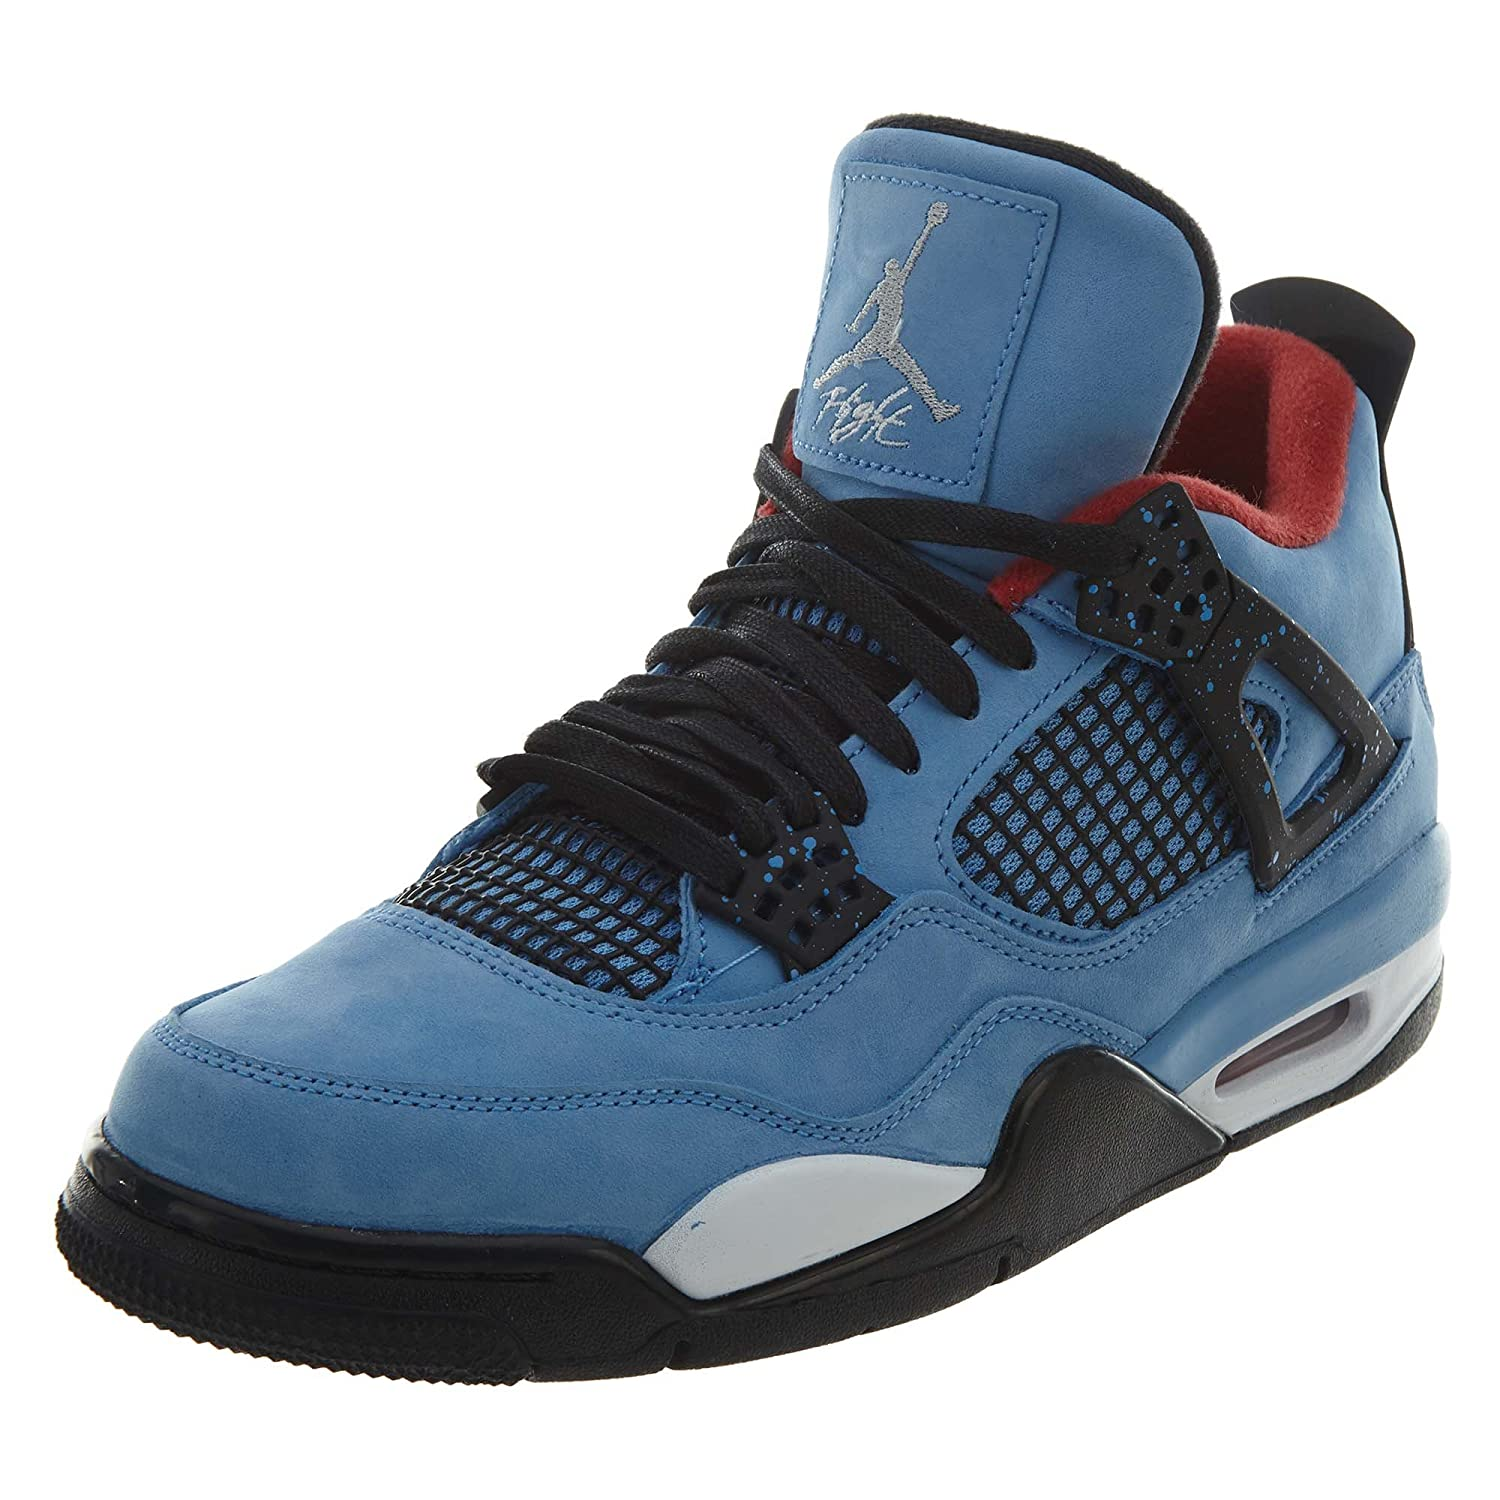 sneakers for cheap 9f2b8 abb2b Amazon.com | Jordan Air 4 Retro Travis Scott Cactus Jack ...